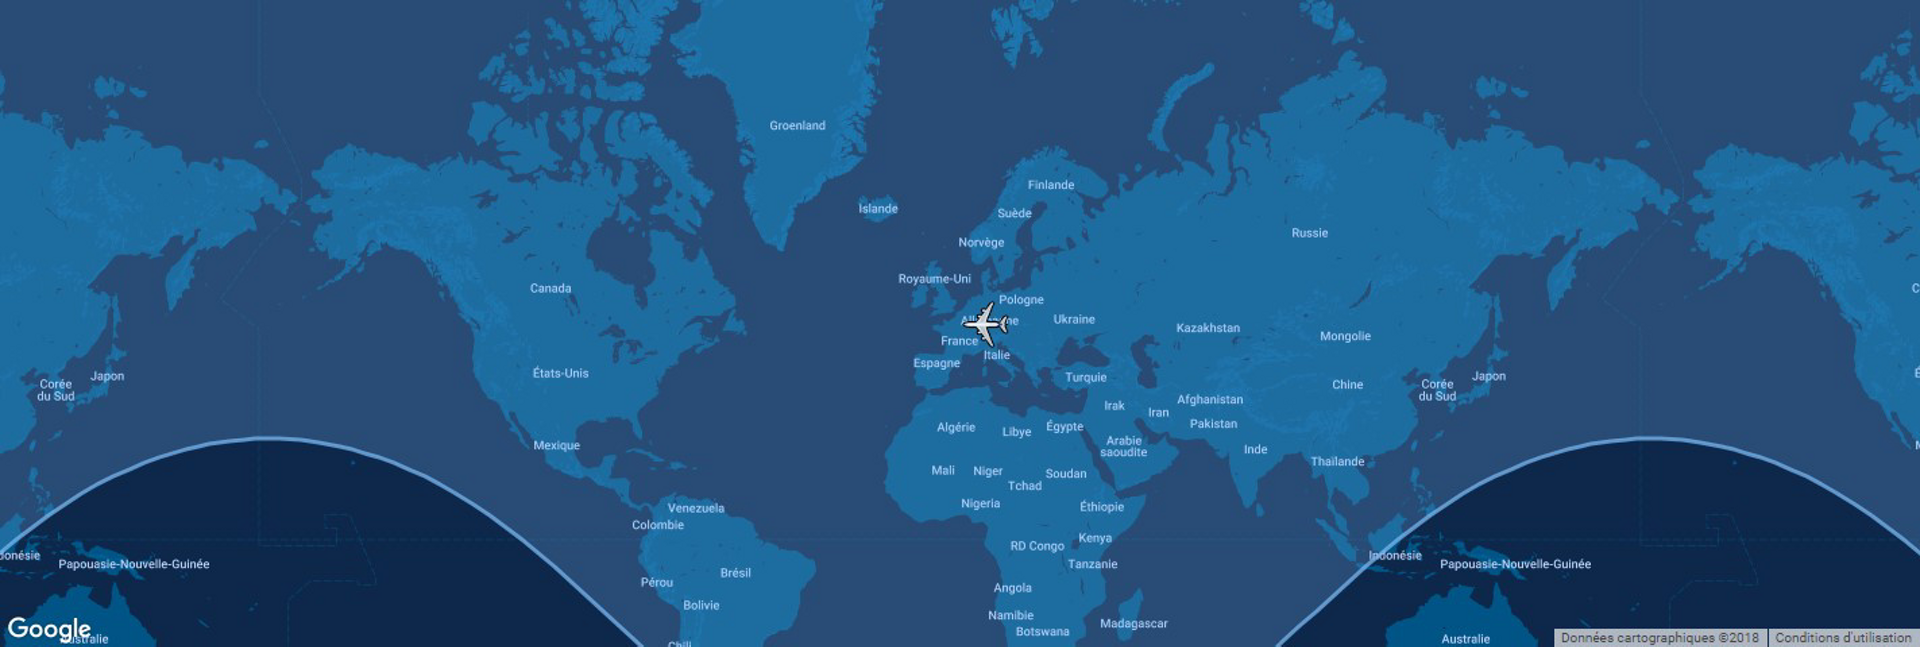 Overlaid on a global map, the typical range for Airbus' A330-300 commercial aircraft is shown in this diagram.